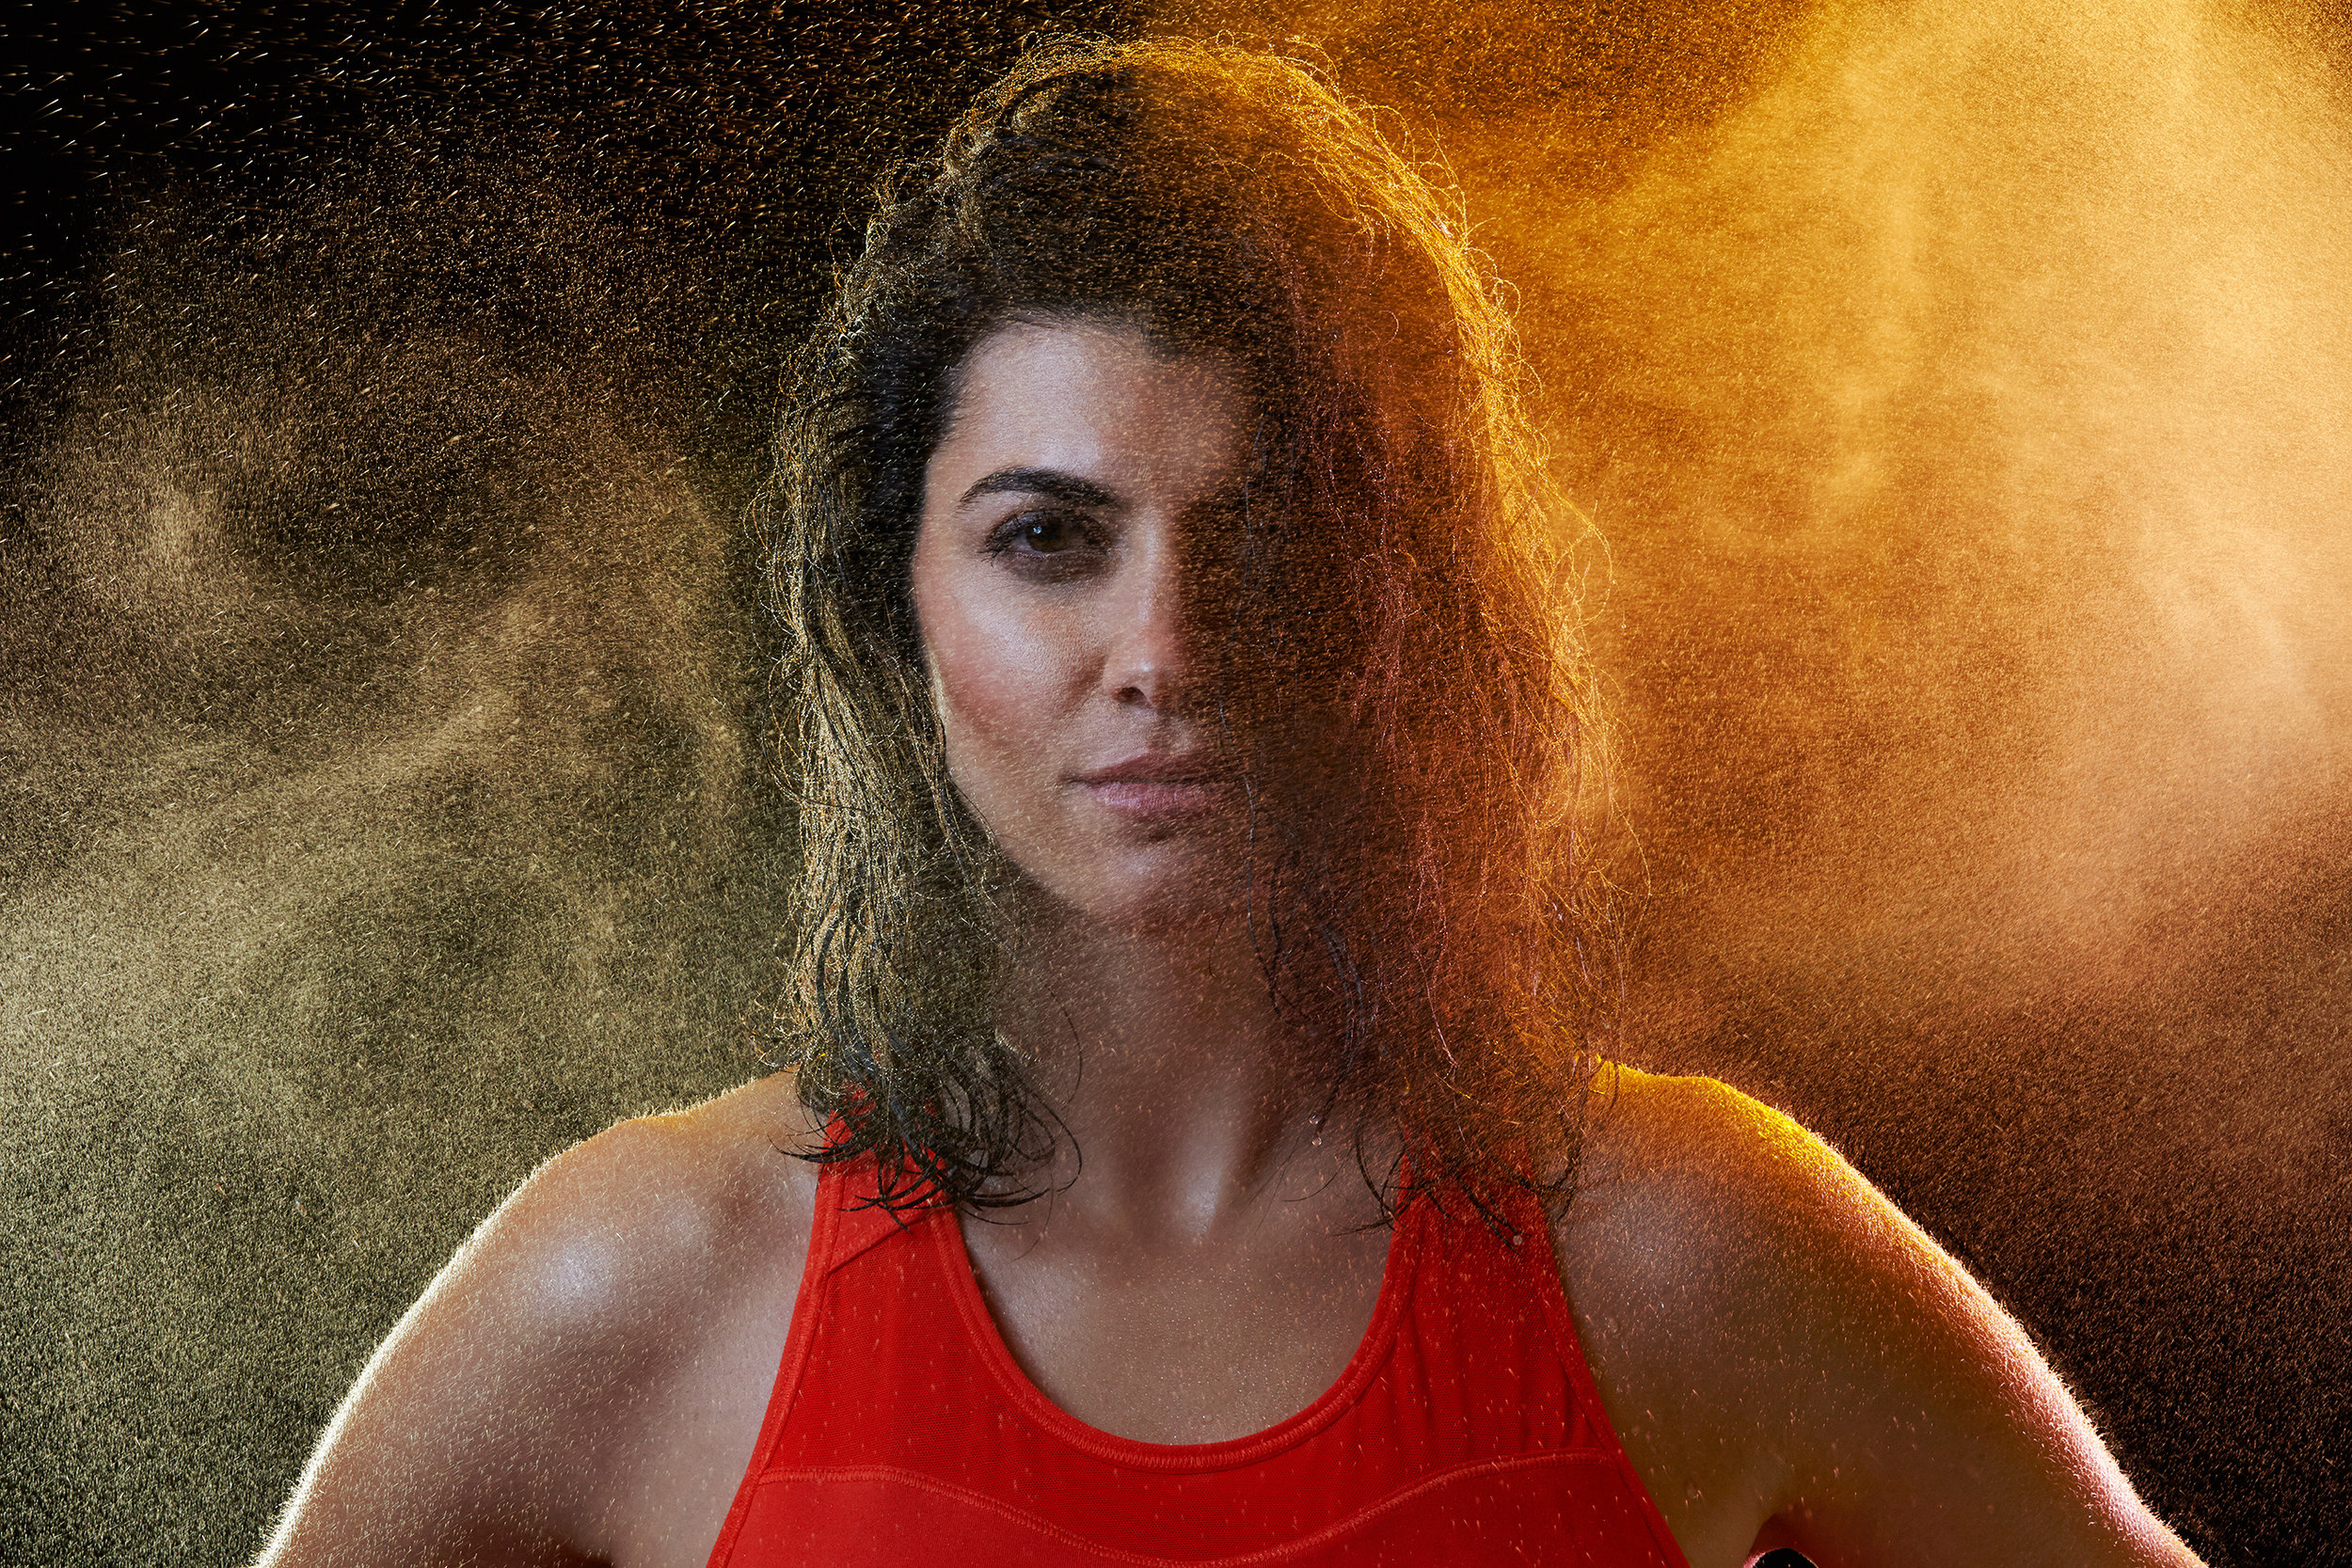 SWEAT-CREATIVE--BEAUTY-FITNESS-ADVERTISING--PORTRAIT-STEPHANIE-STRAFACE-FITNESS-MIST-©-JONATHAN-R.-BECKERMAN-PHOTOGRAPHY-01.jpg